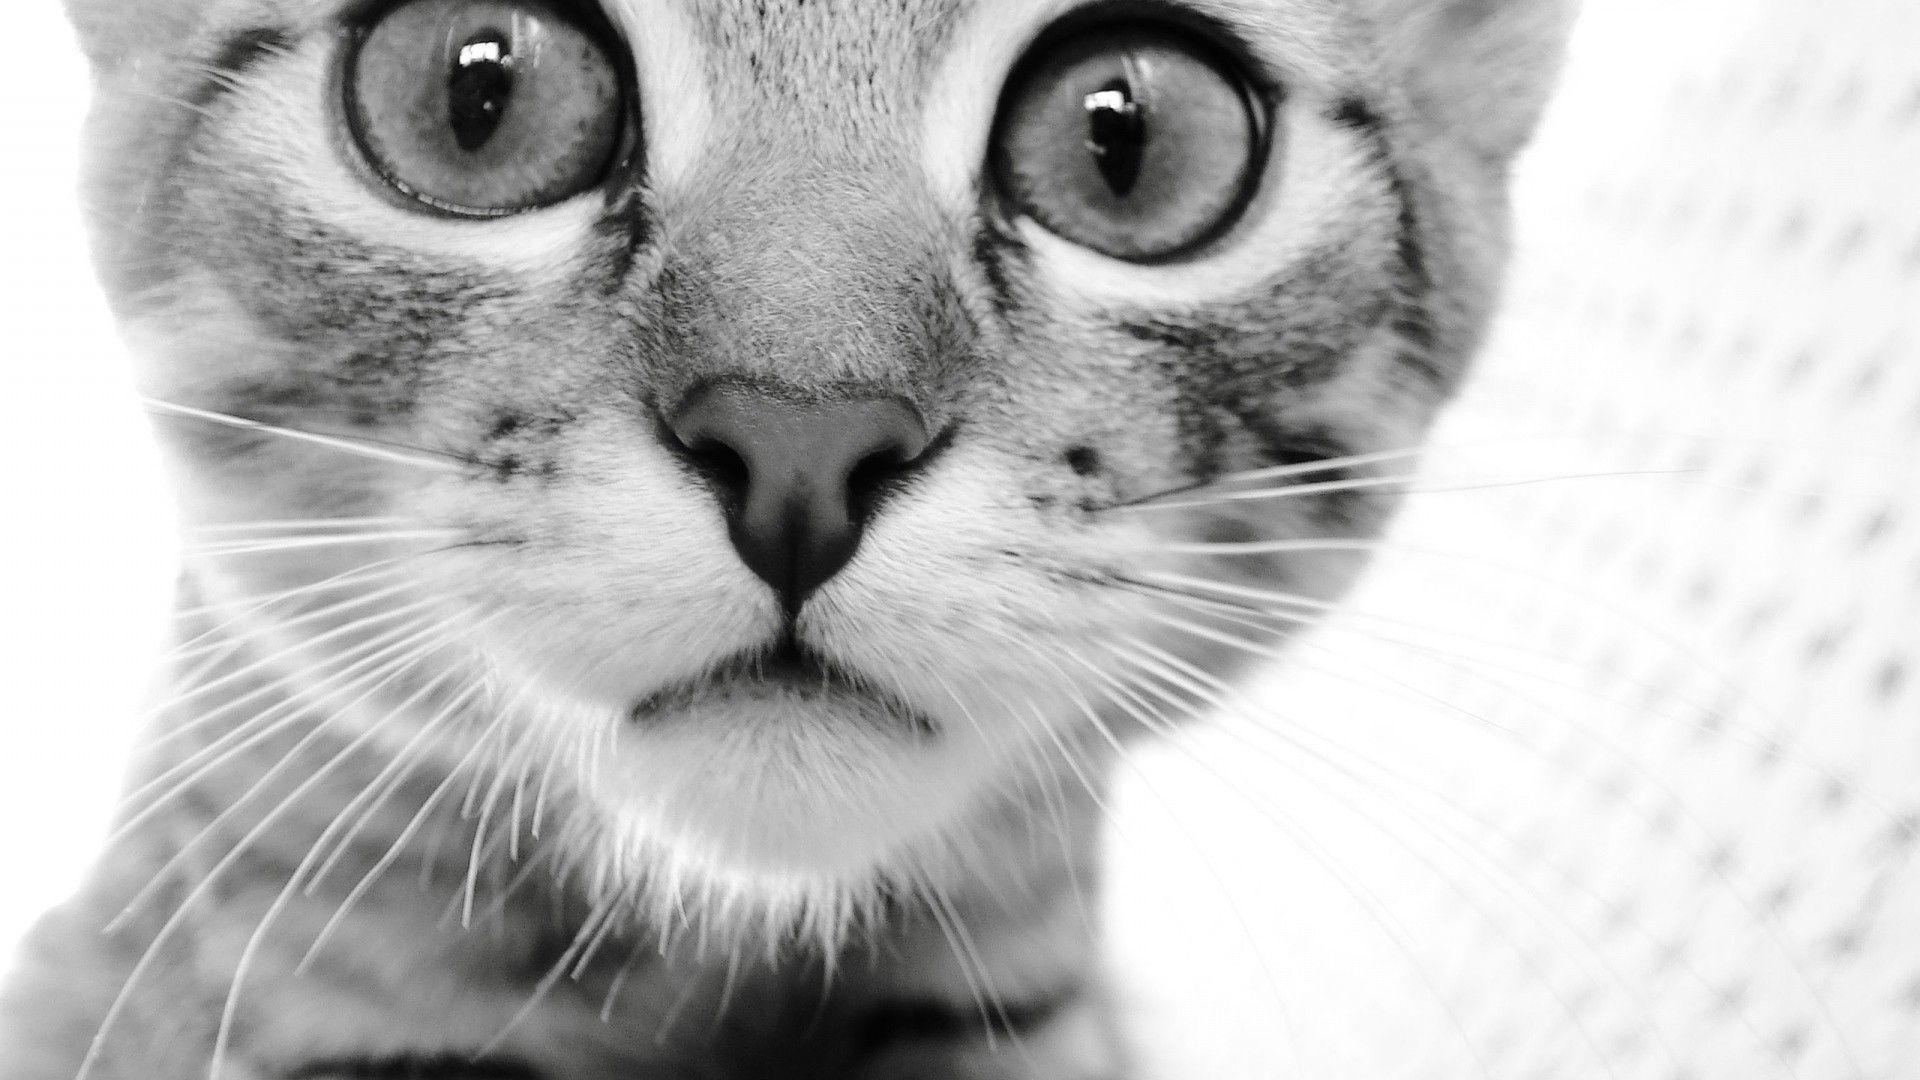 HD Wallpapers 1920x1080 Animals Cat Face Eyes Black White